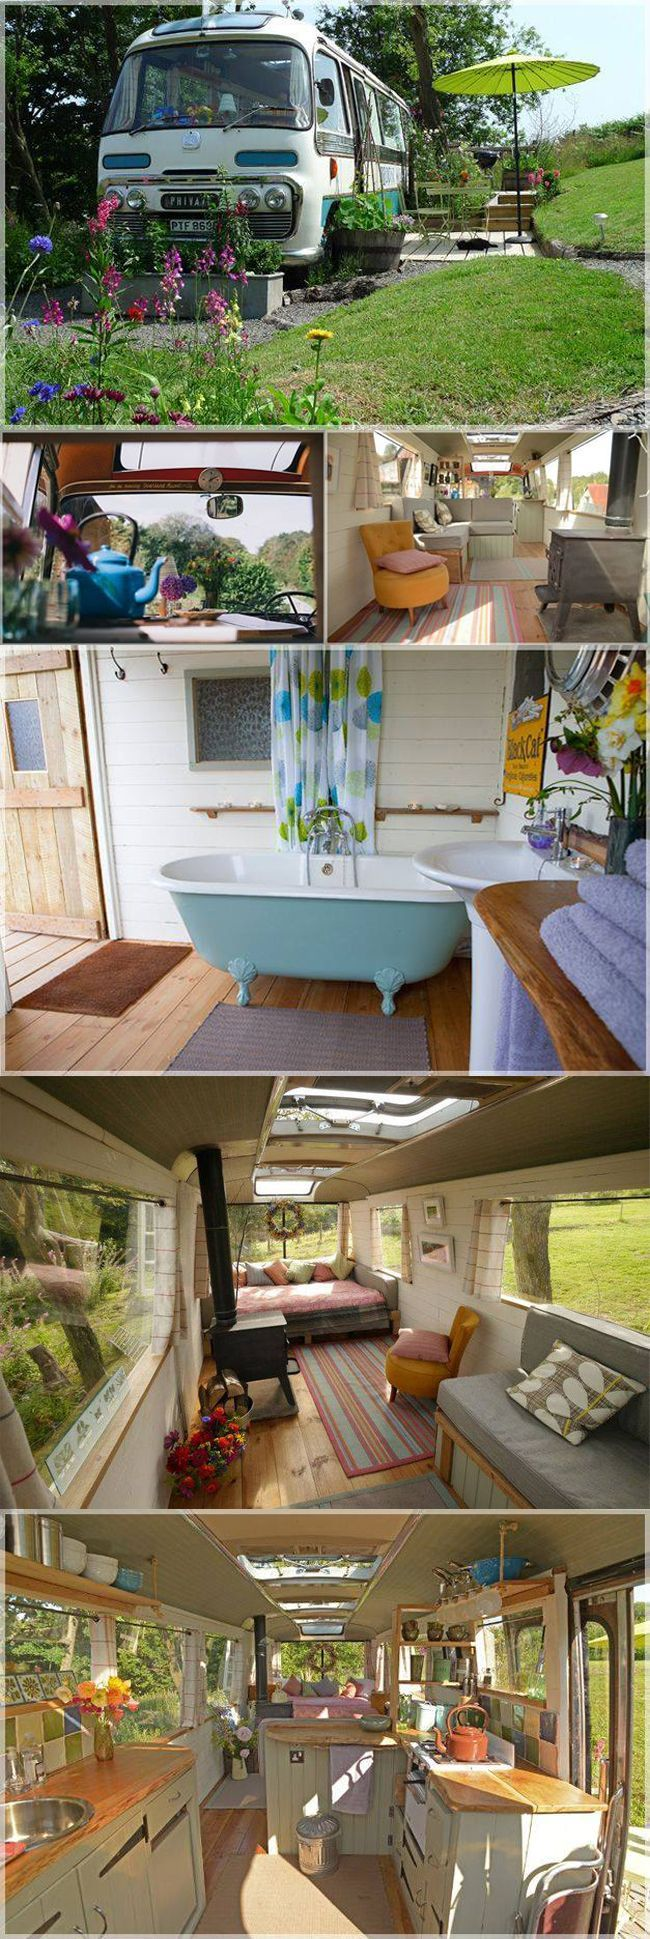 19 best car images on pinterest van living camper van conversions this bus conversion shows that there really is no limit to what you can do with a vintage bus or trailer located on the edge of the radnorshire hills miles solutioingenieria Images